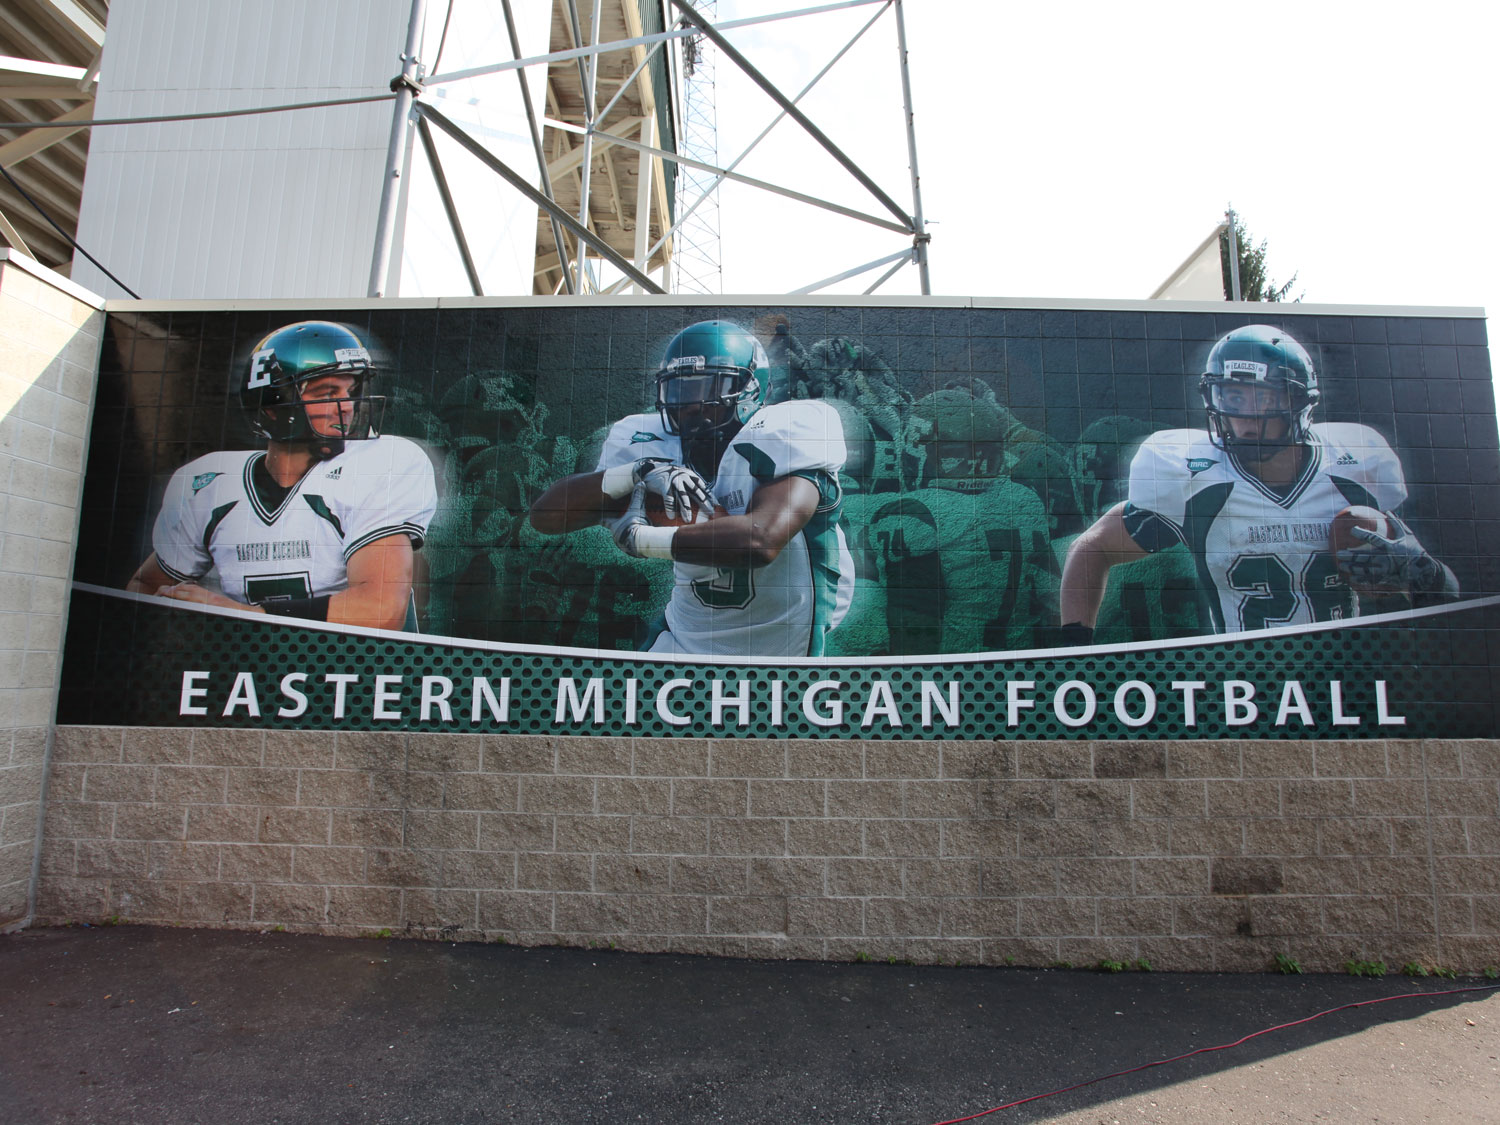 Eastern Michigan University Football Stadium Textured Graphics